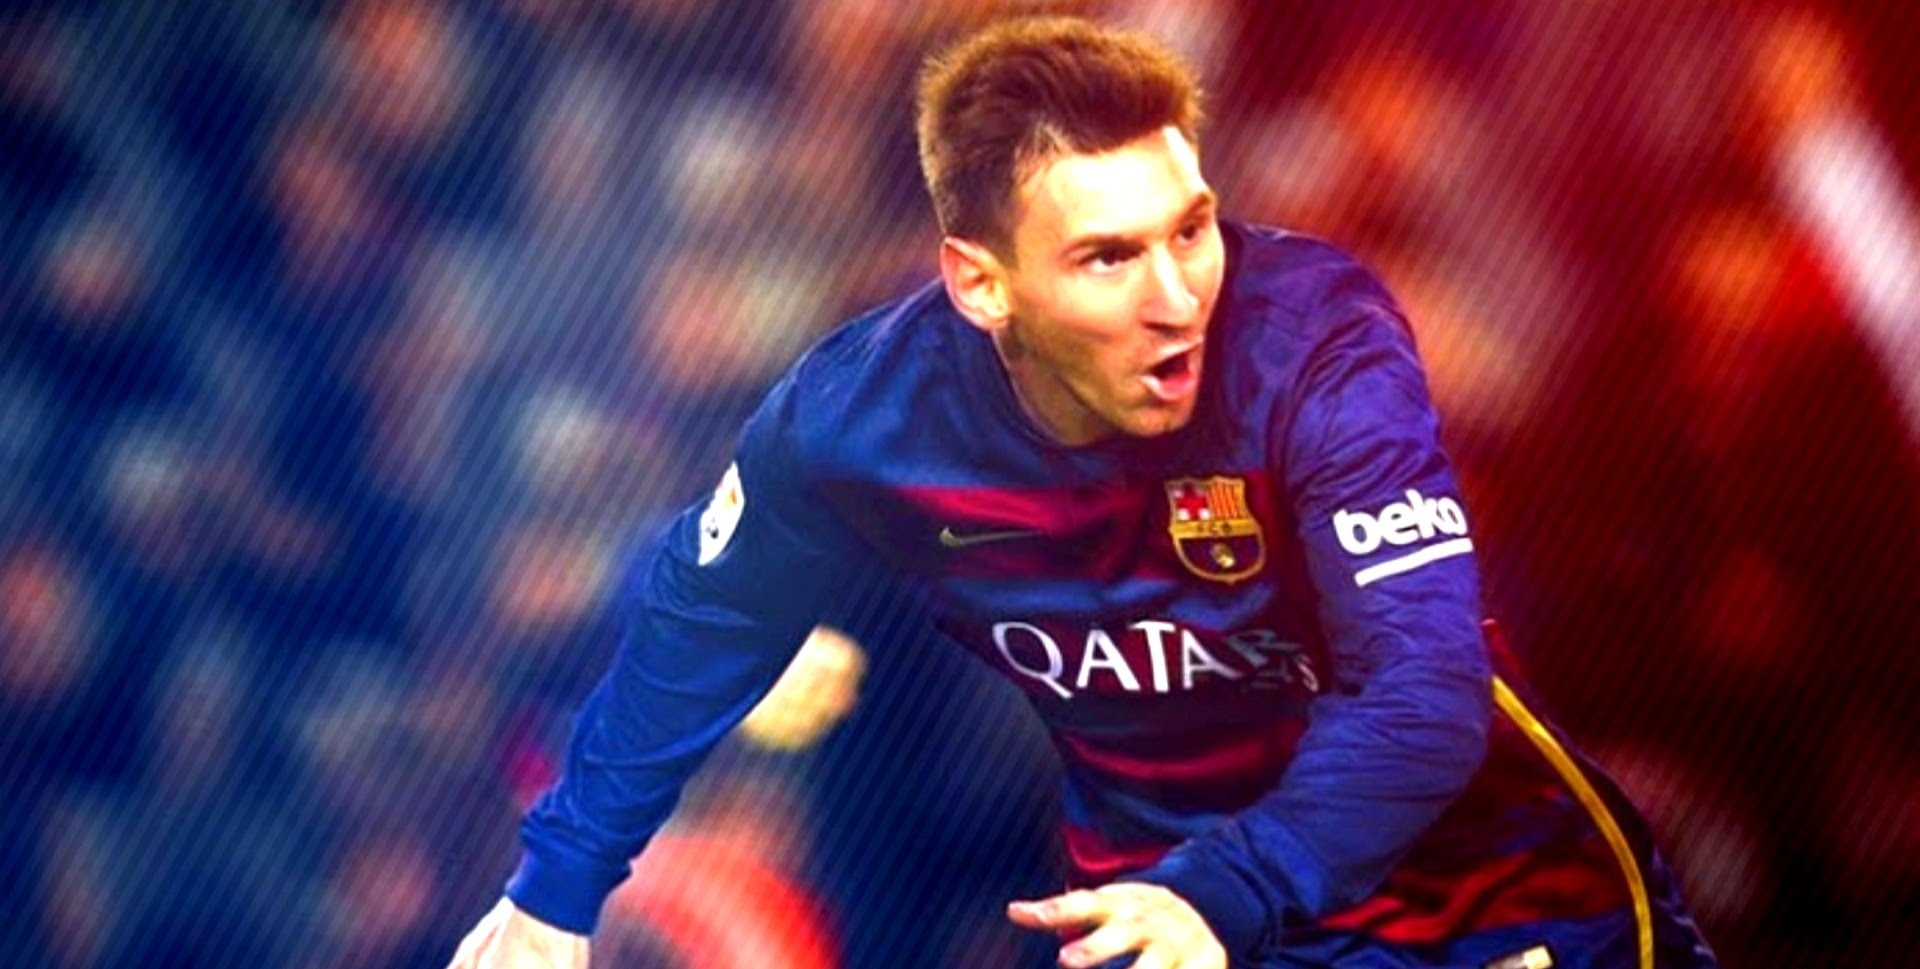 Lionel Messi 2016 Wallpapers   HD Wallpapers Backgrounds of Your 1920x969